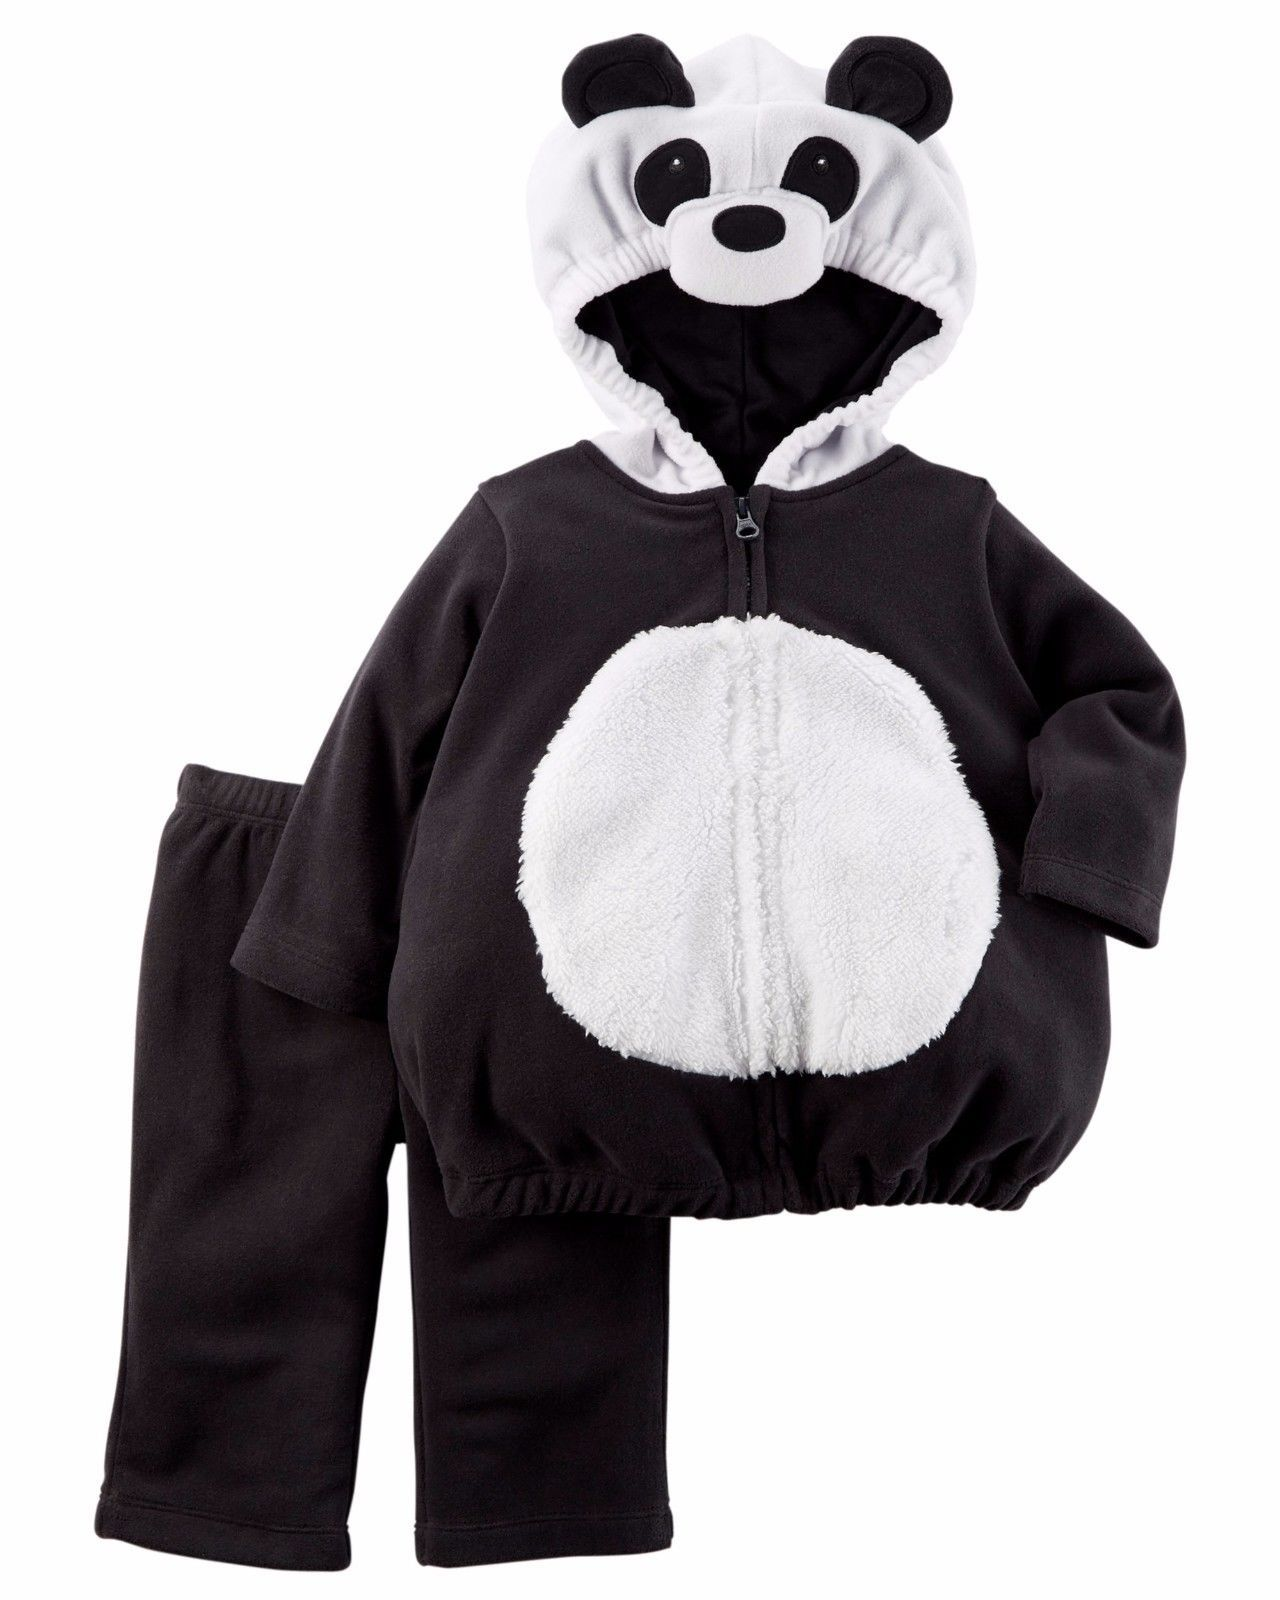 NEW NWT Boys Carter's Halloween Panda Costume 12 or 18 Months 2 Piece